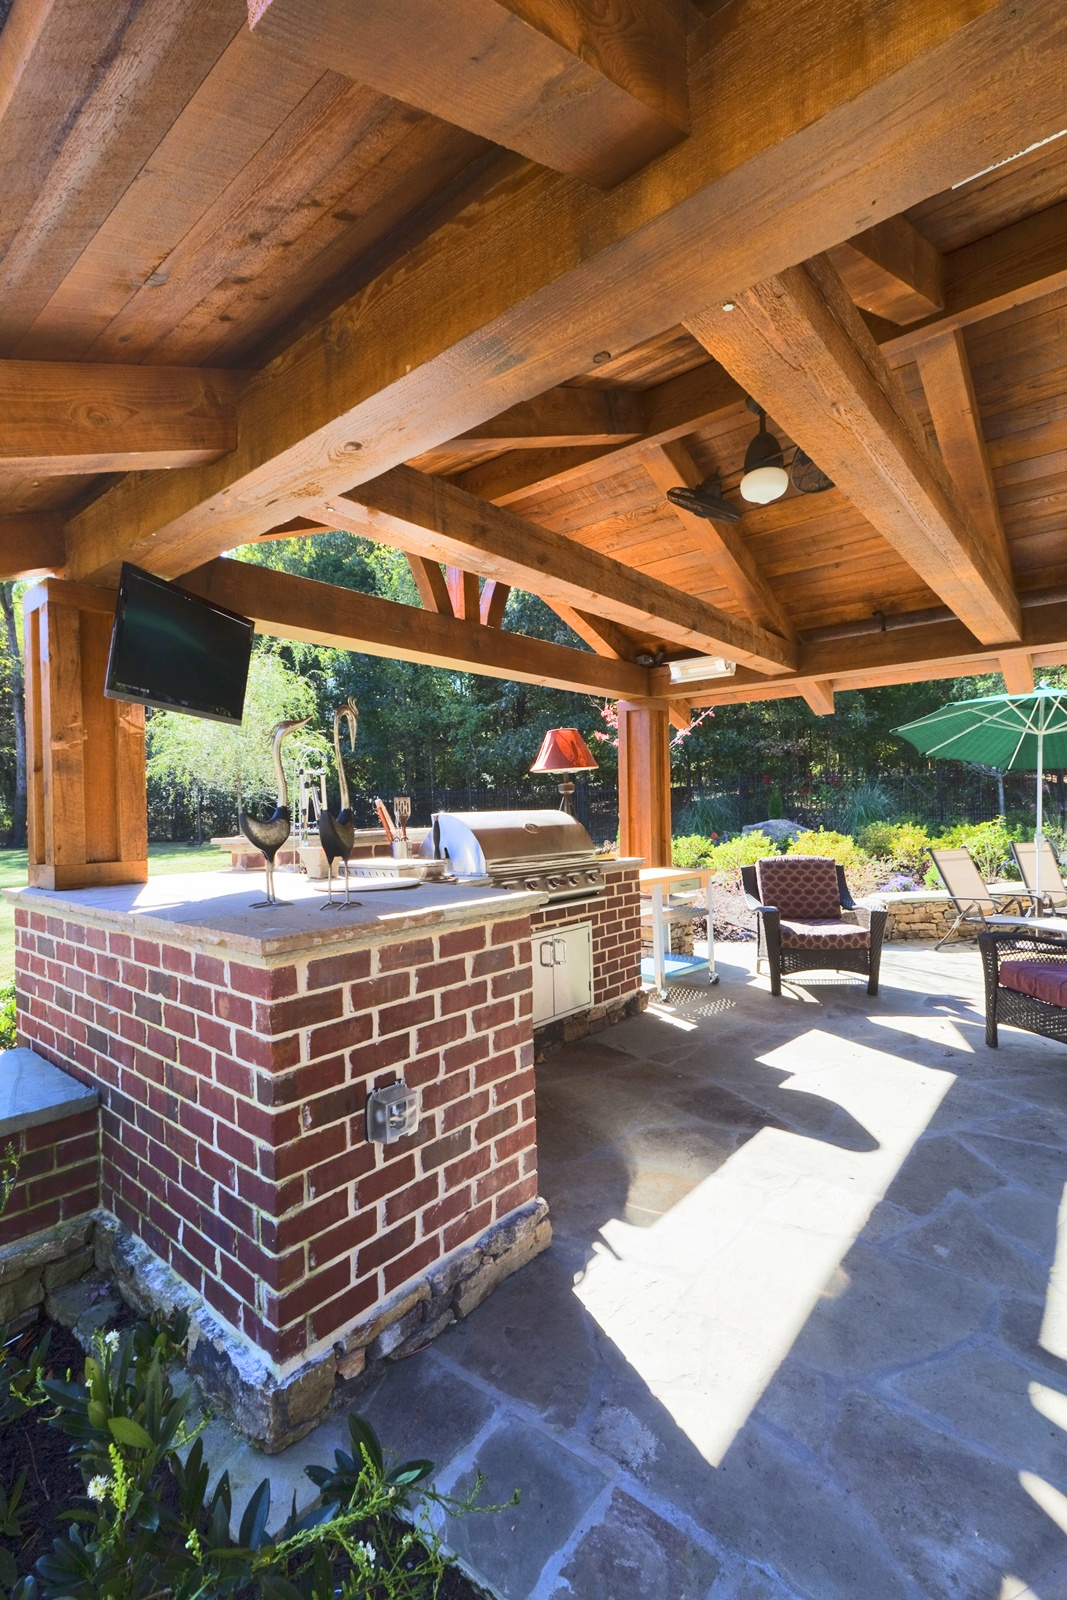 How Much Does It Cost To Design And Build An Outdoor Kitchen